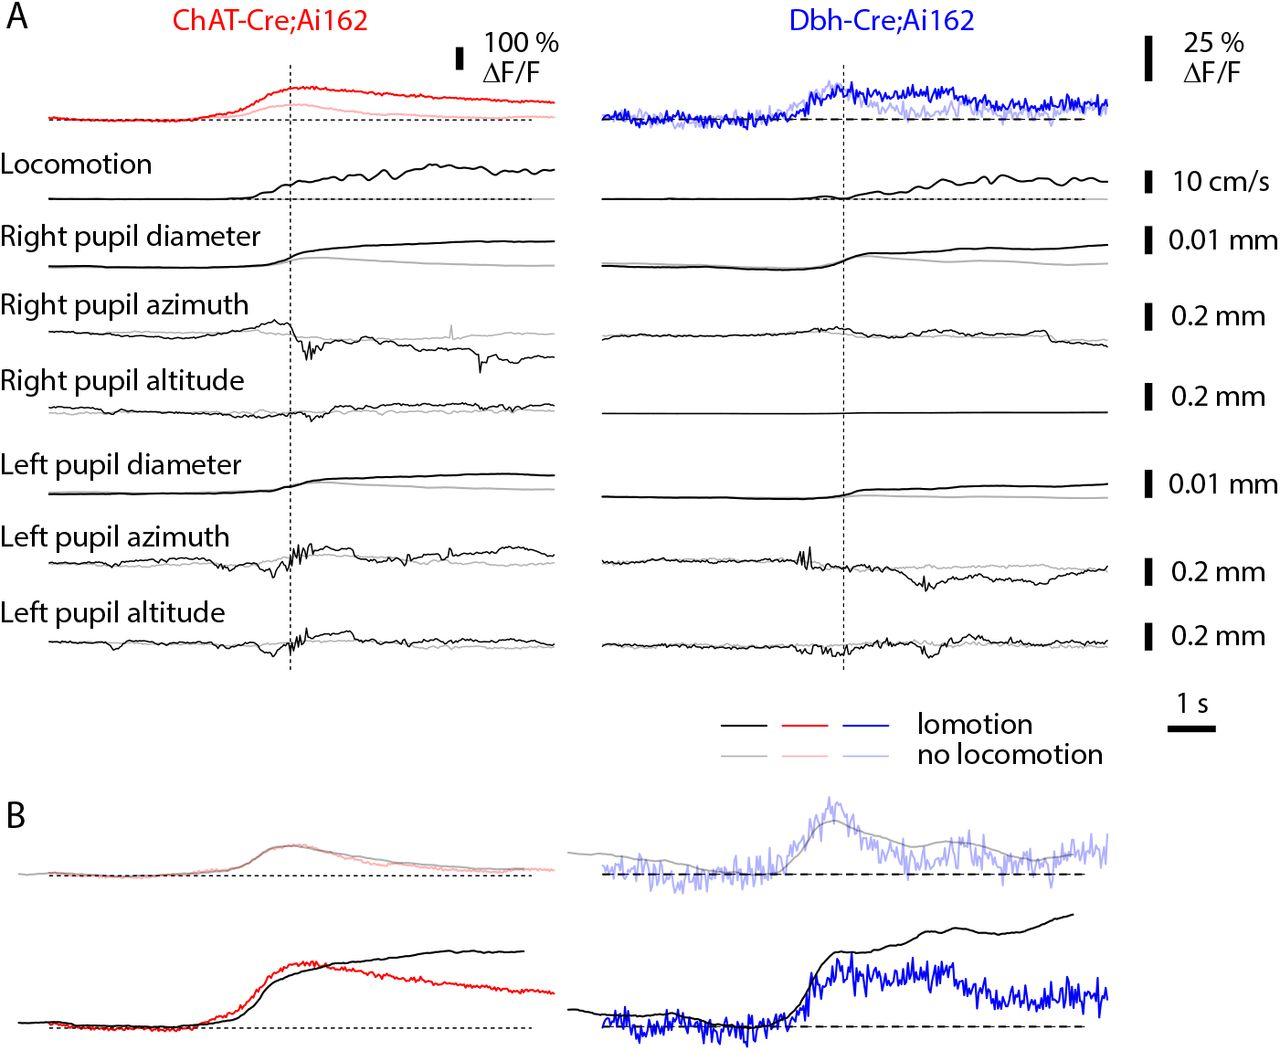 Activation of neuromodulatory axon projections in primary visual